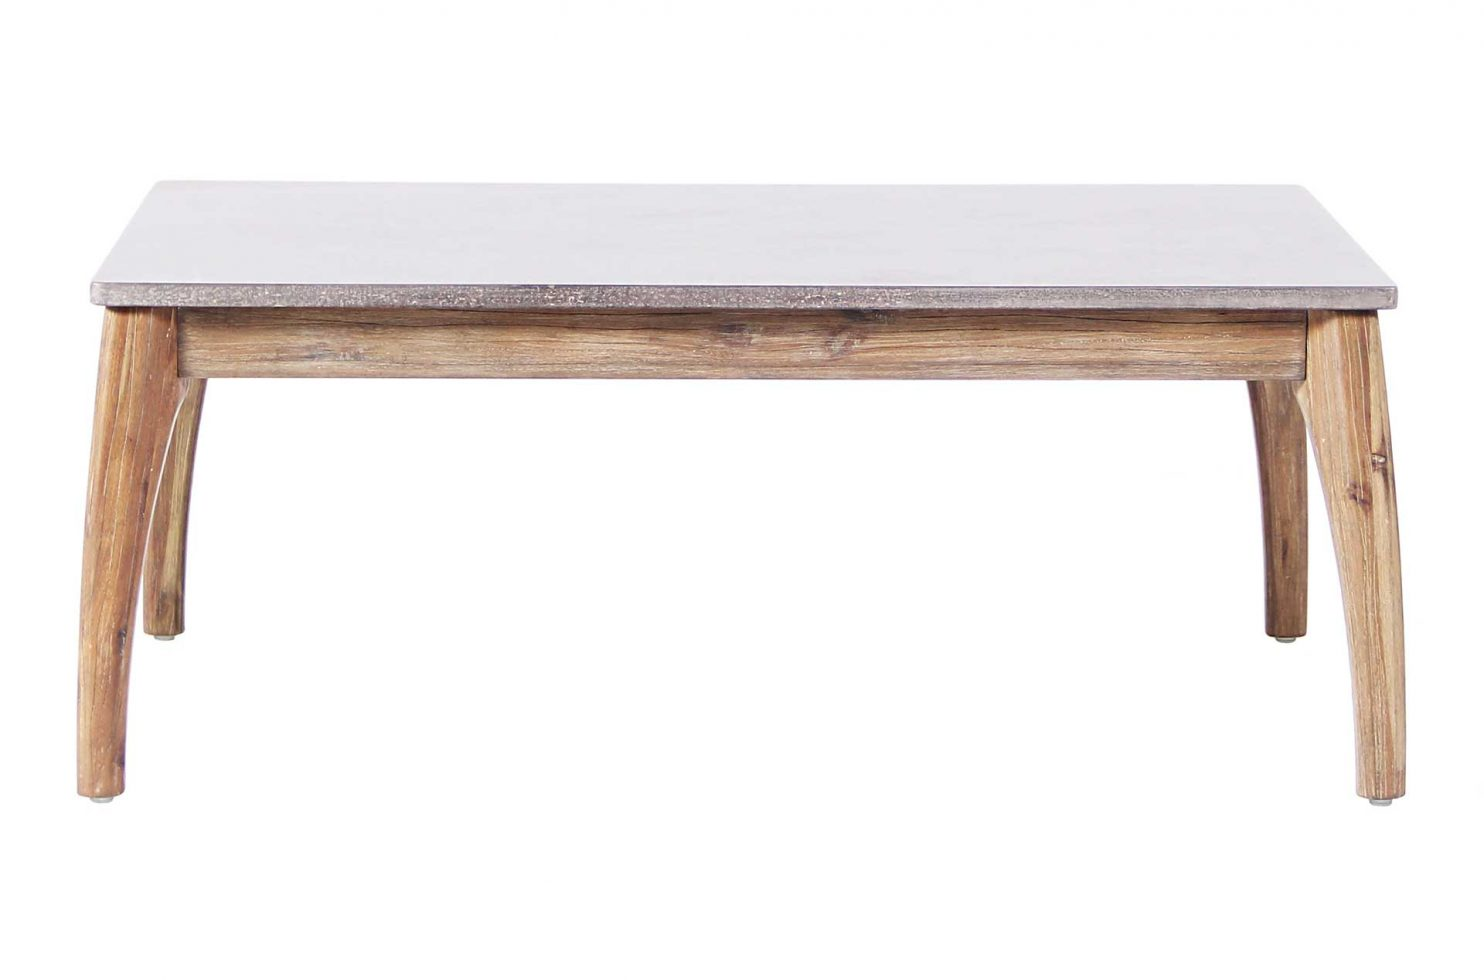 wings coffee table E50499003 1 front web